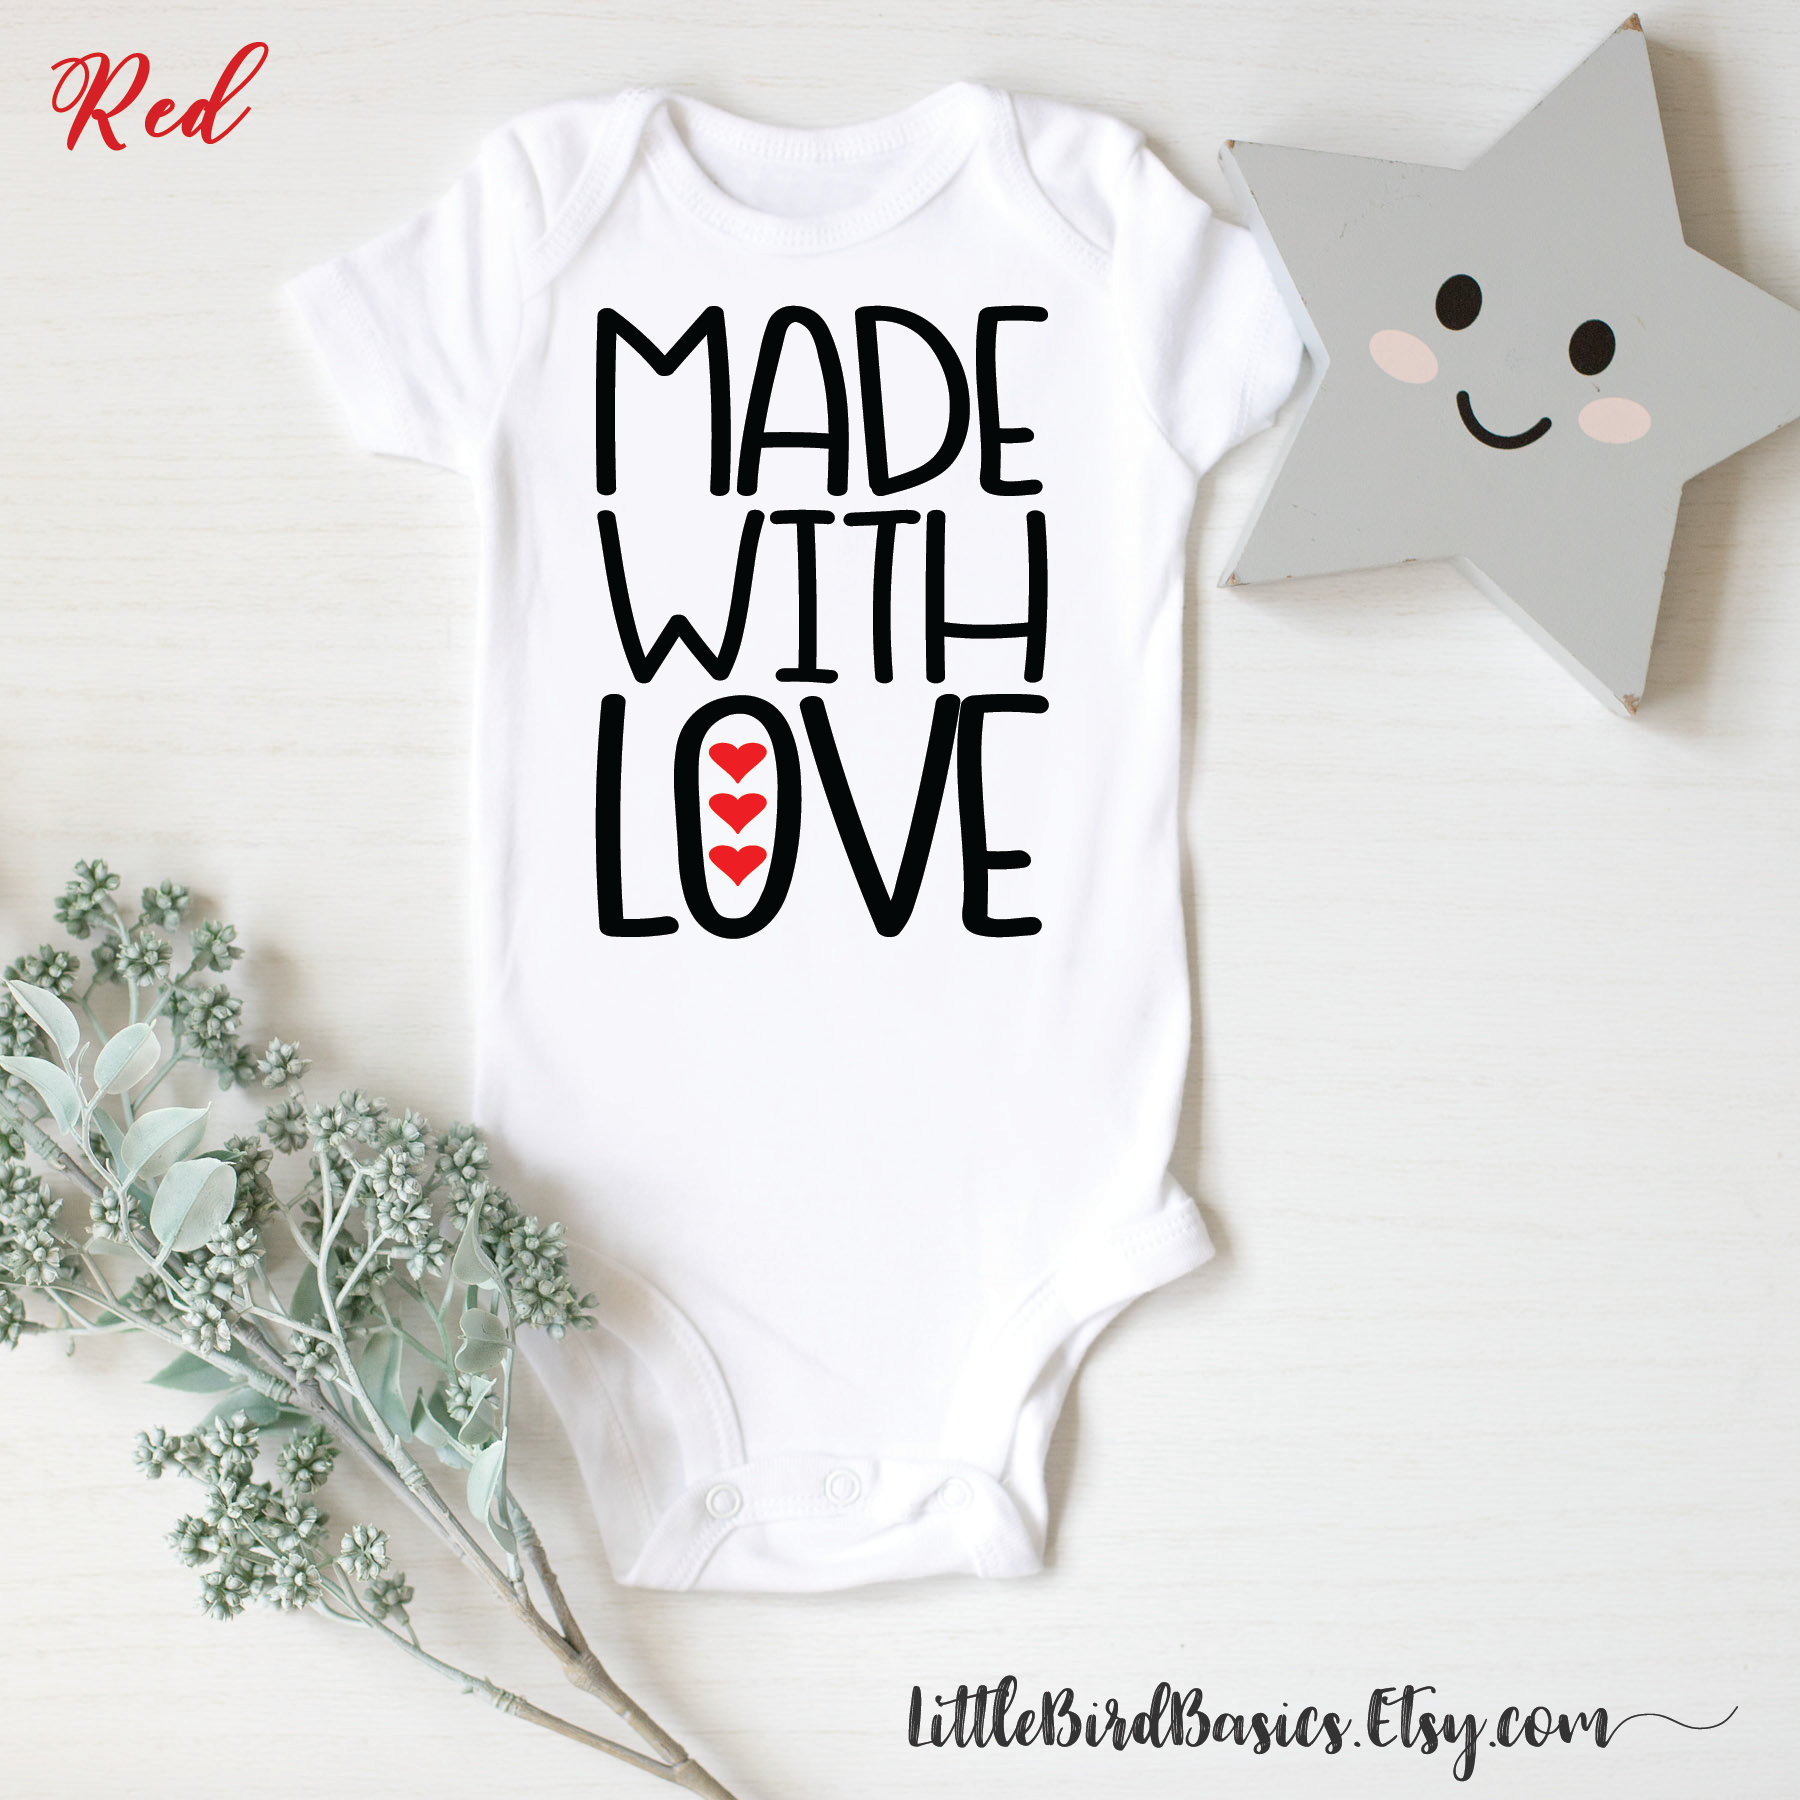 baby coming soon baby bodysuit guess what pregnancy reveal grandparents pregnancy bodysuit Hello Grandma see you in month and year baby announcement bodysuit surprise pregnancy IVF